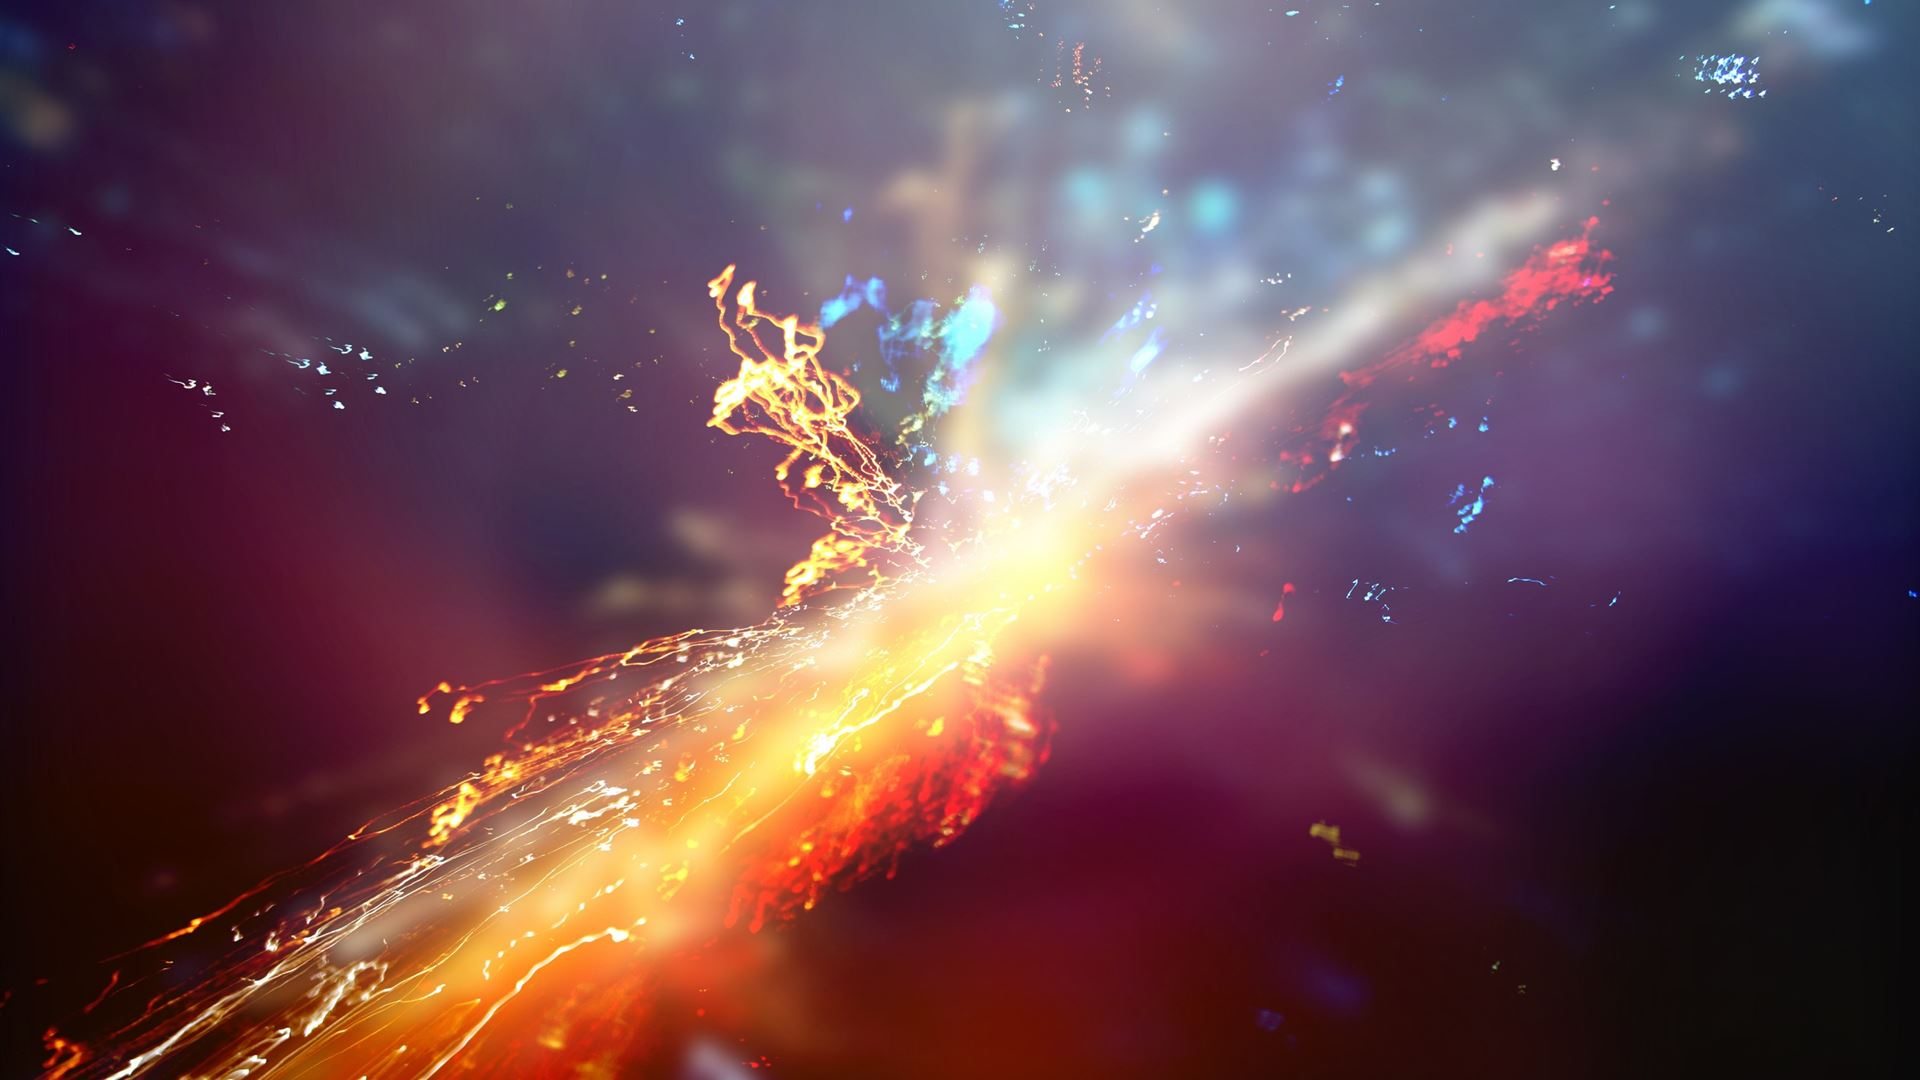 Amazing Wallpapers Download Wallpapers Effects Colors: Color Explosion Mac Wallpaper Download